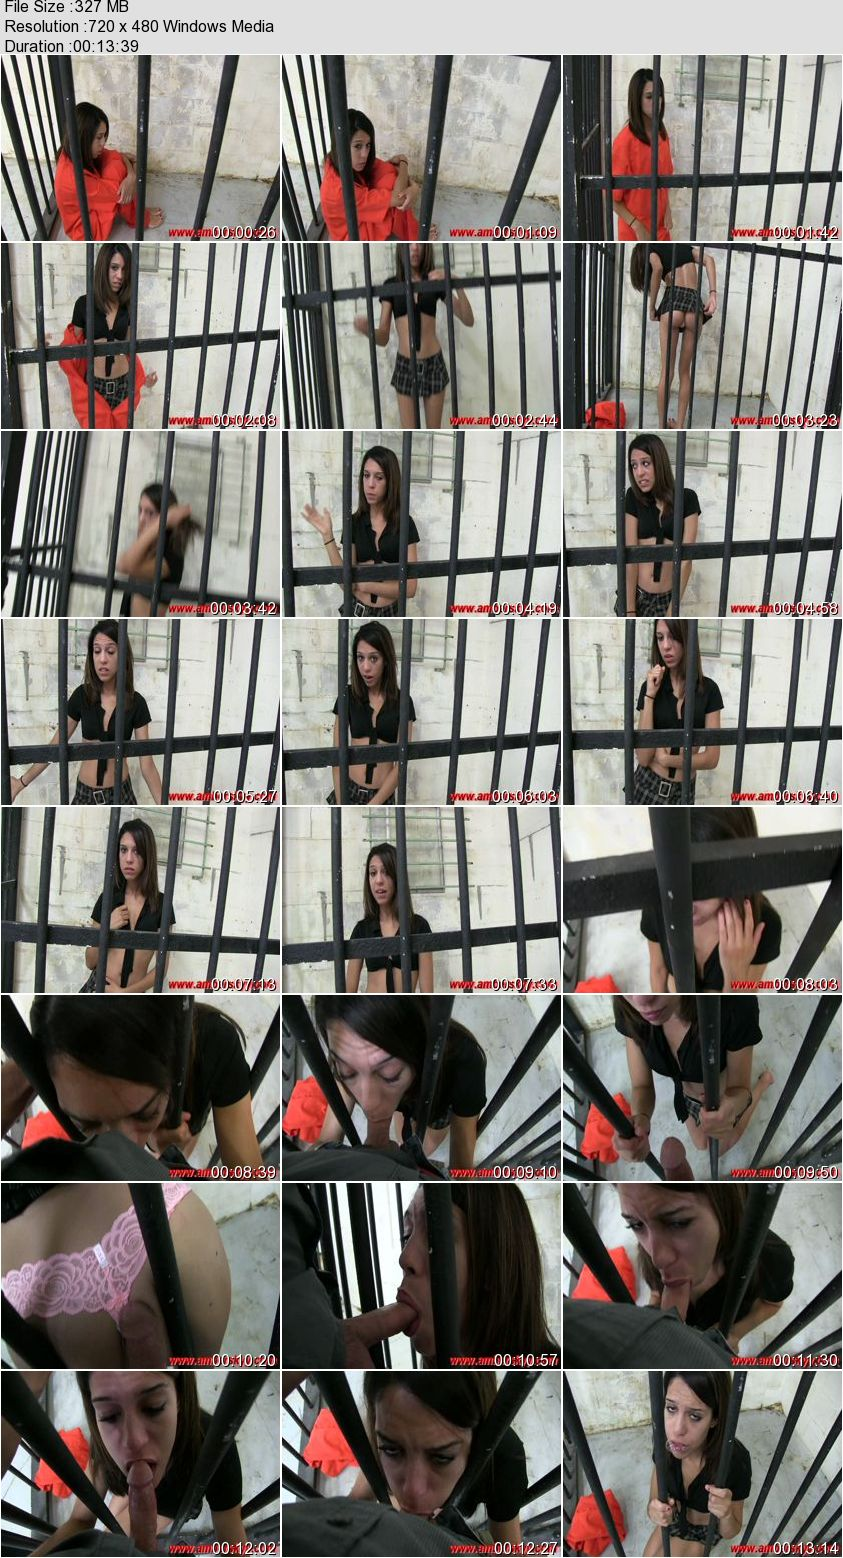 931953635_Amber_Skyy___Amber_s_Stepdad_Gets_Her_Out_of_Jail.wmv.M.K._123_1153lo.jpg